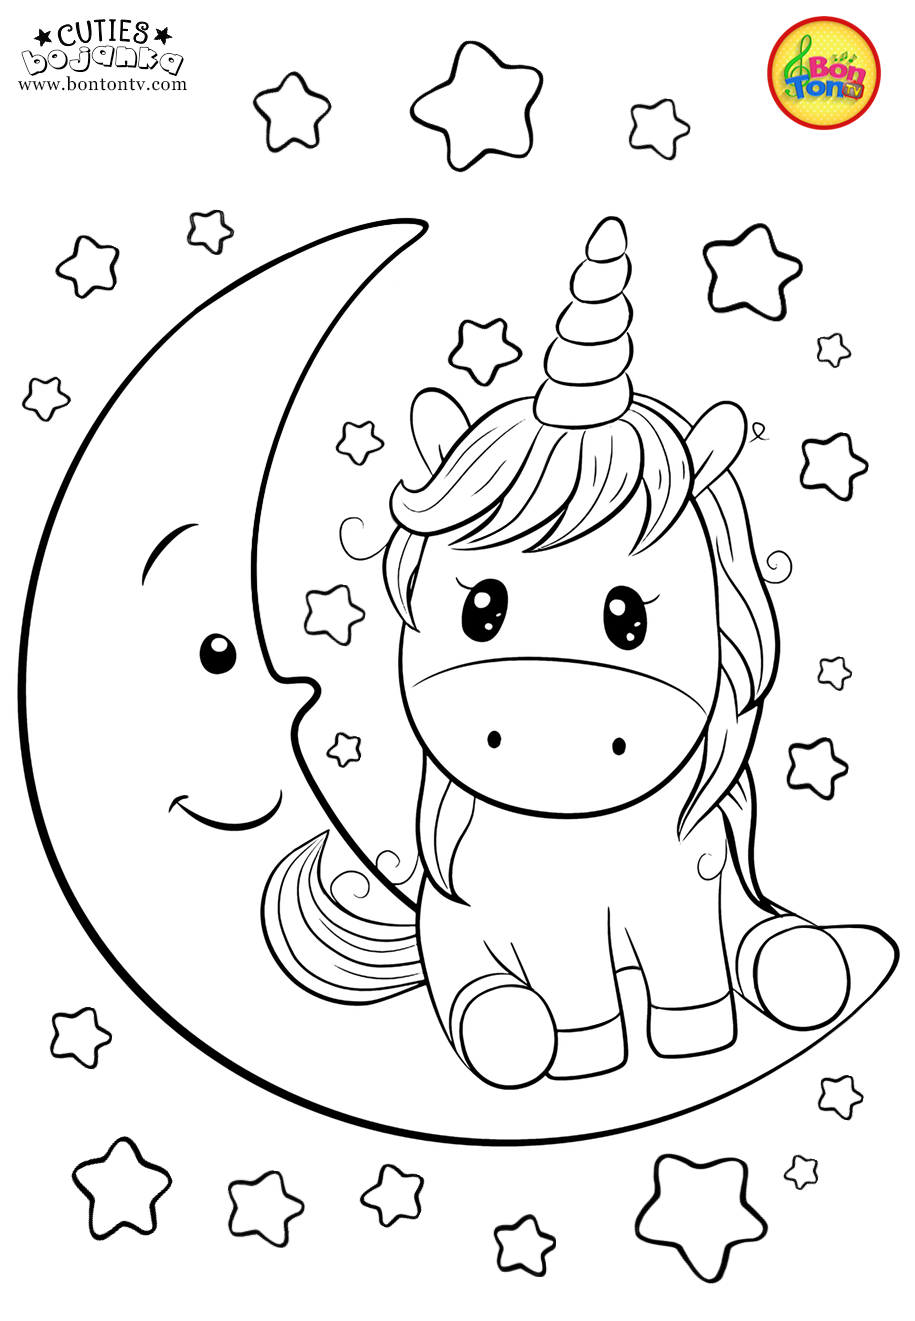 Fantastic Photo Coloring Books For Preschool Tips This Is The Quintessential Self Help Guid In 2021 Unicorn Coloring Pages Free Kids Coloring Pages Cute Coloring Pages